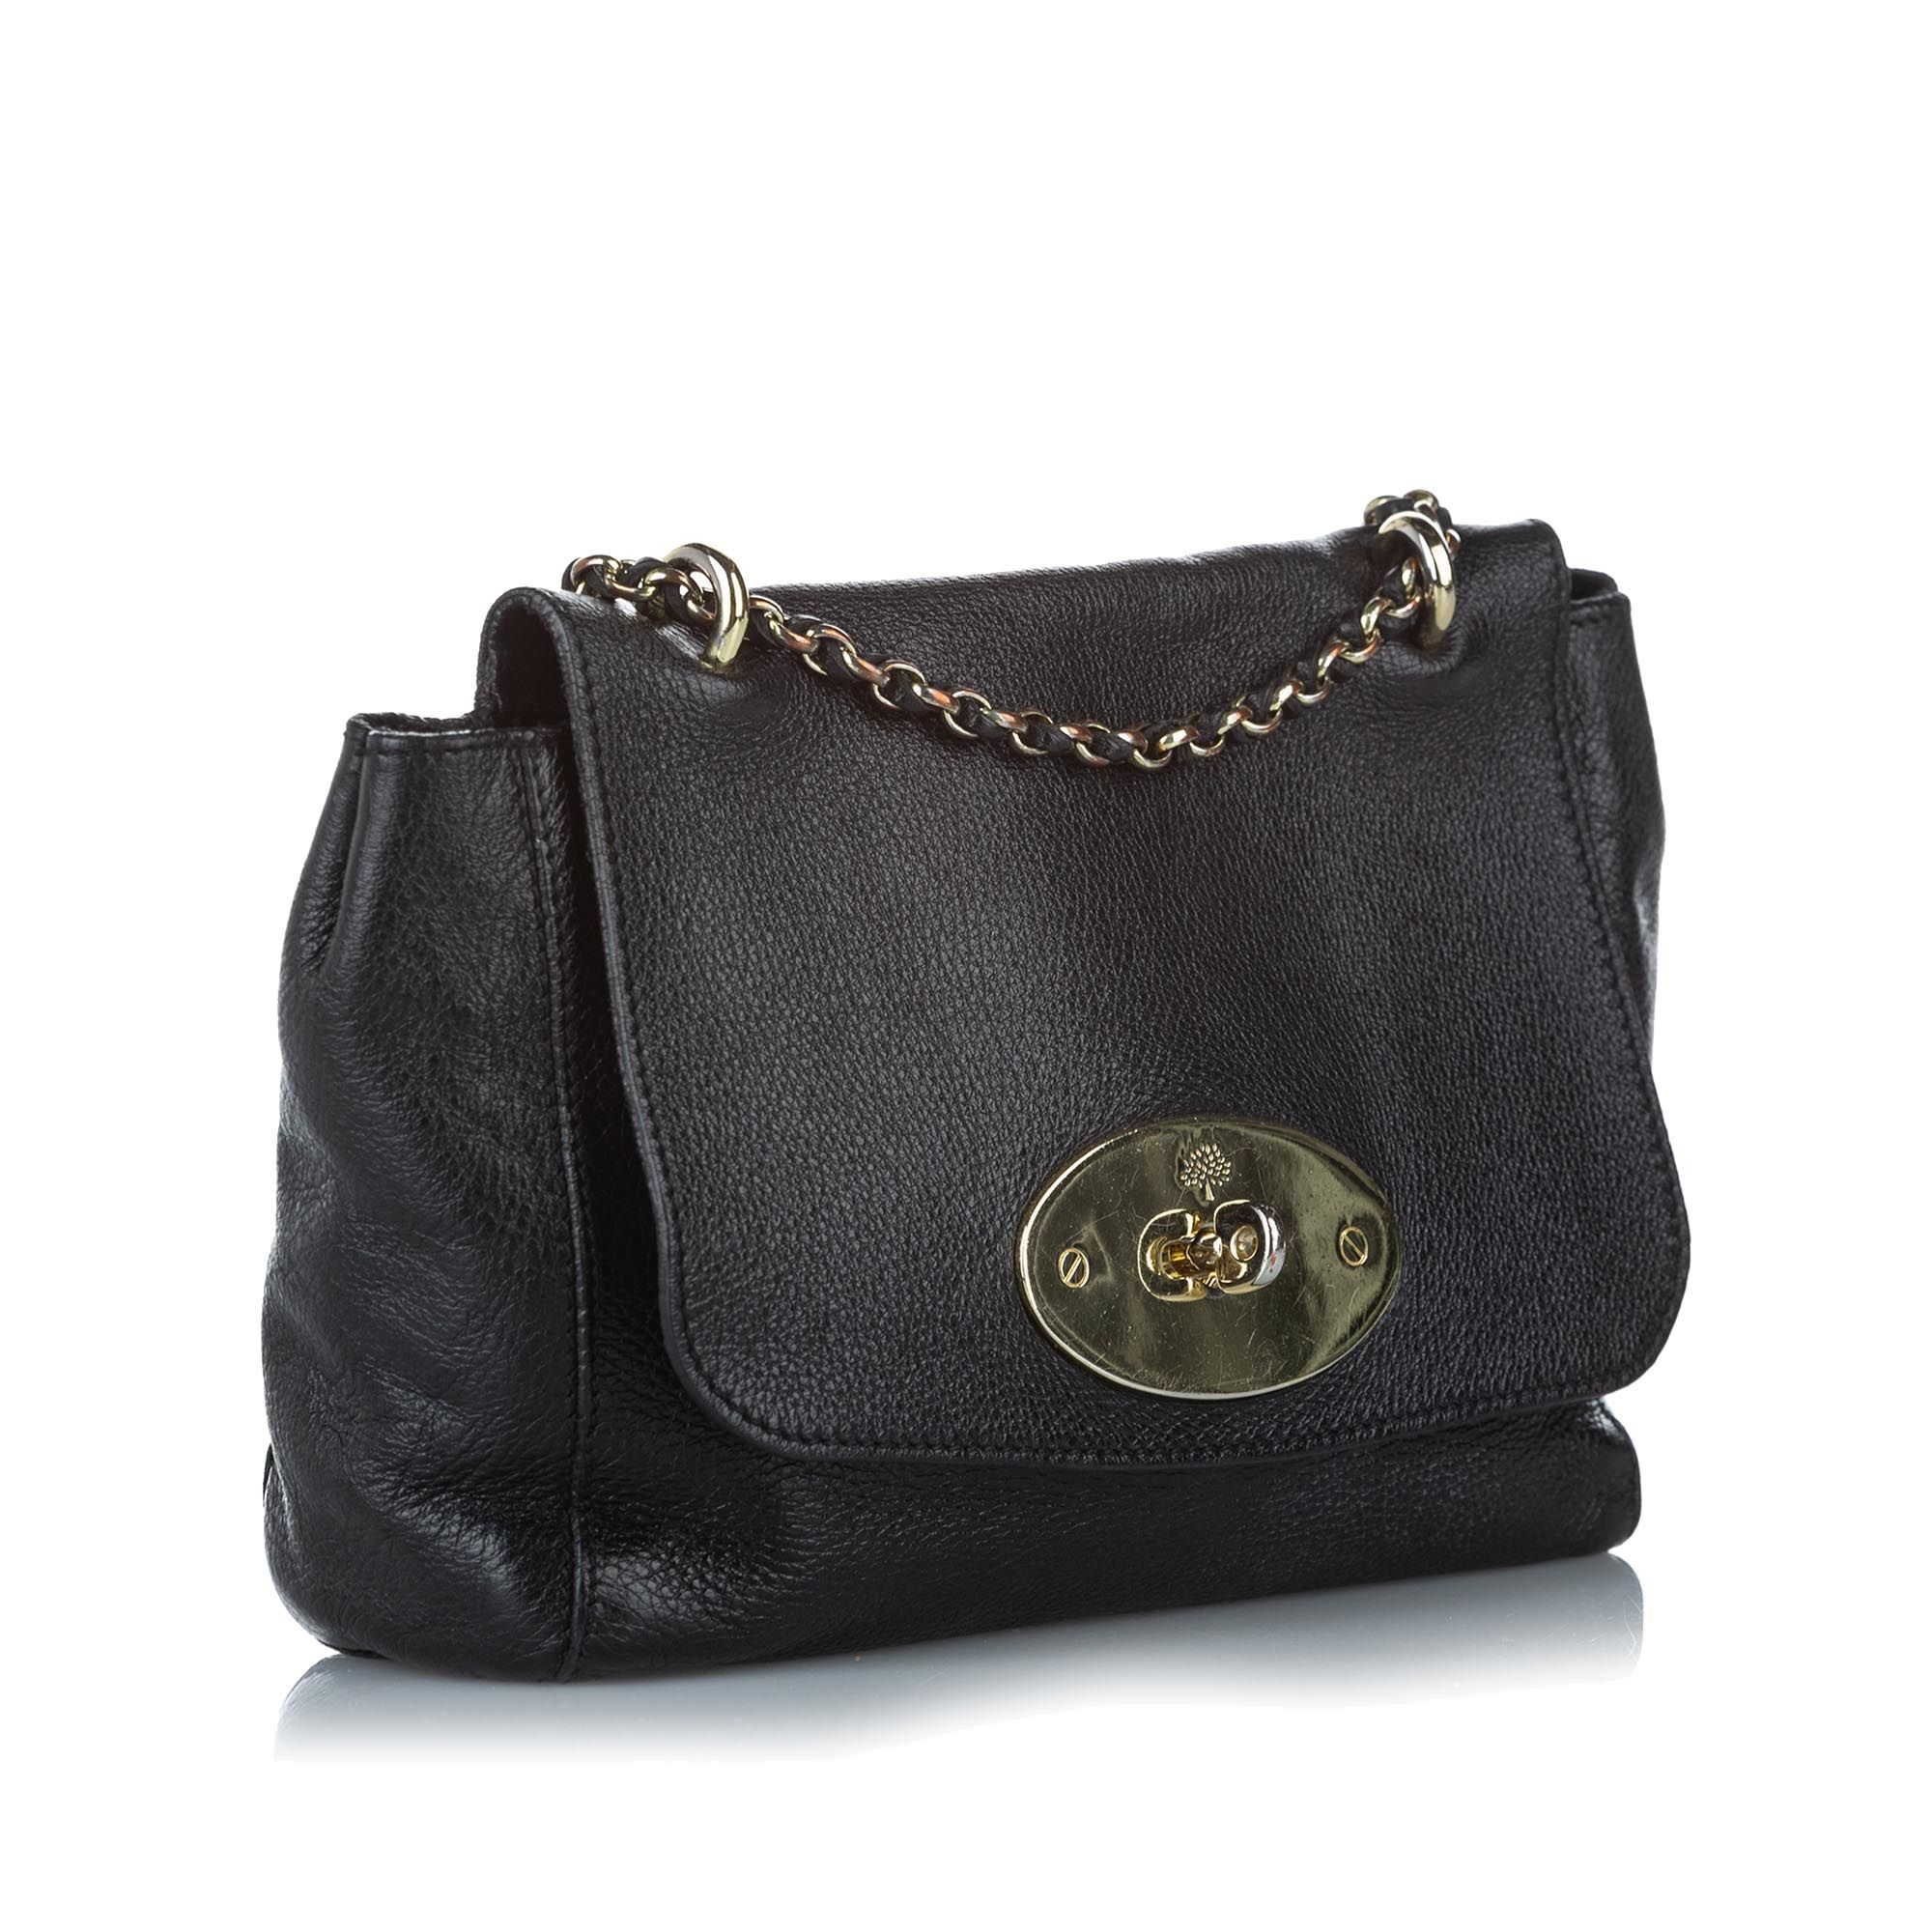 Vintage Mulberry Lily Leather Crossbody Bag Black